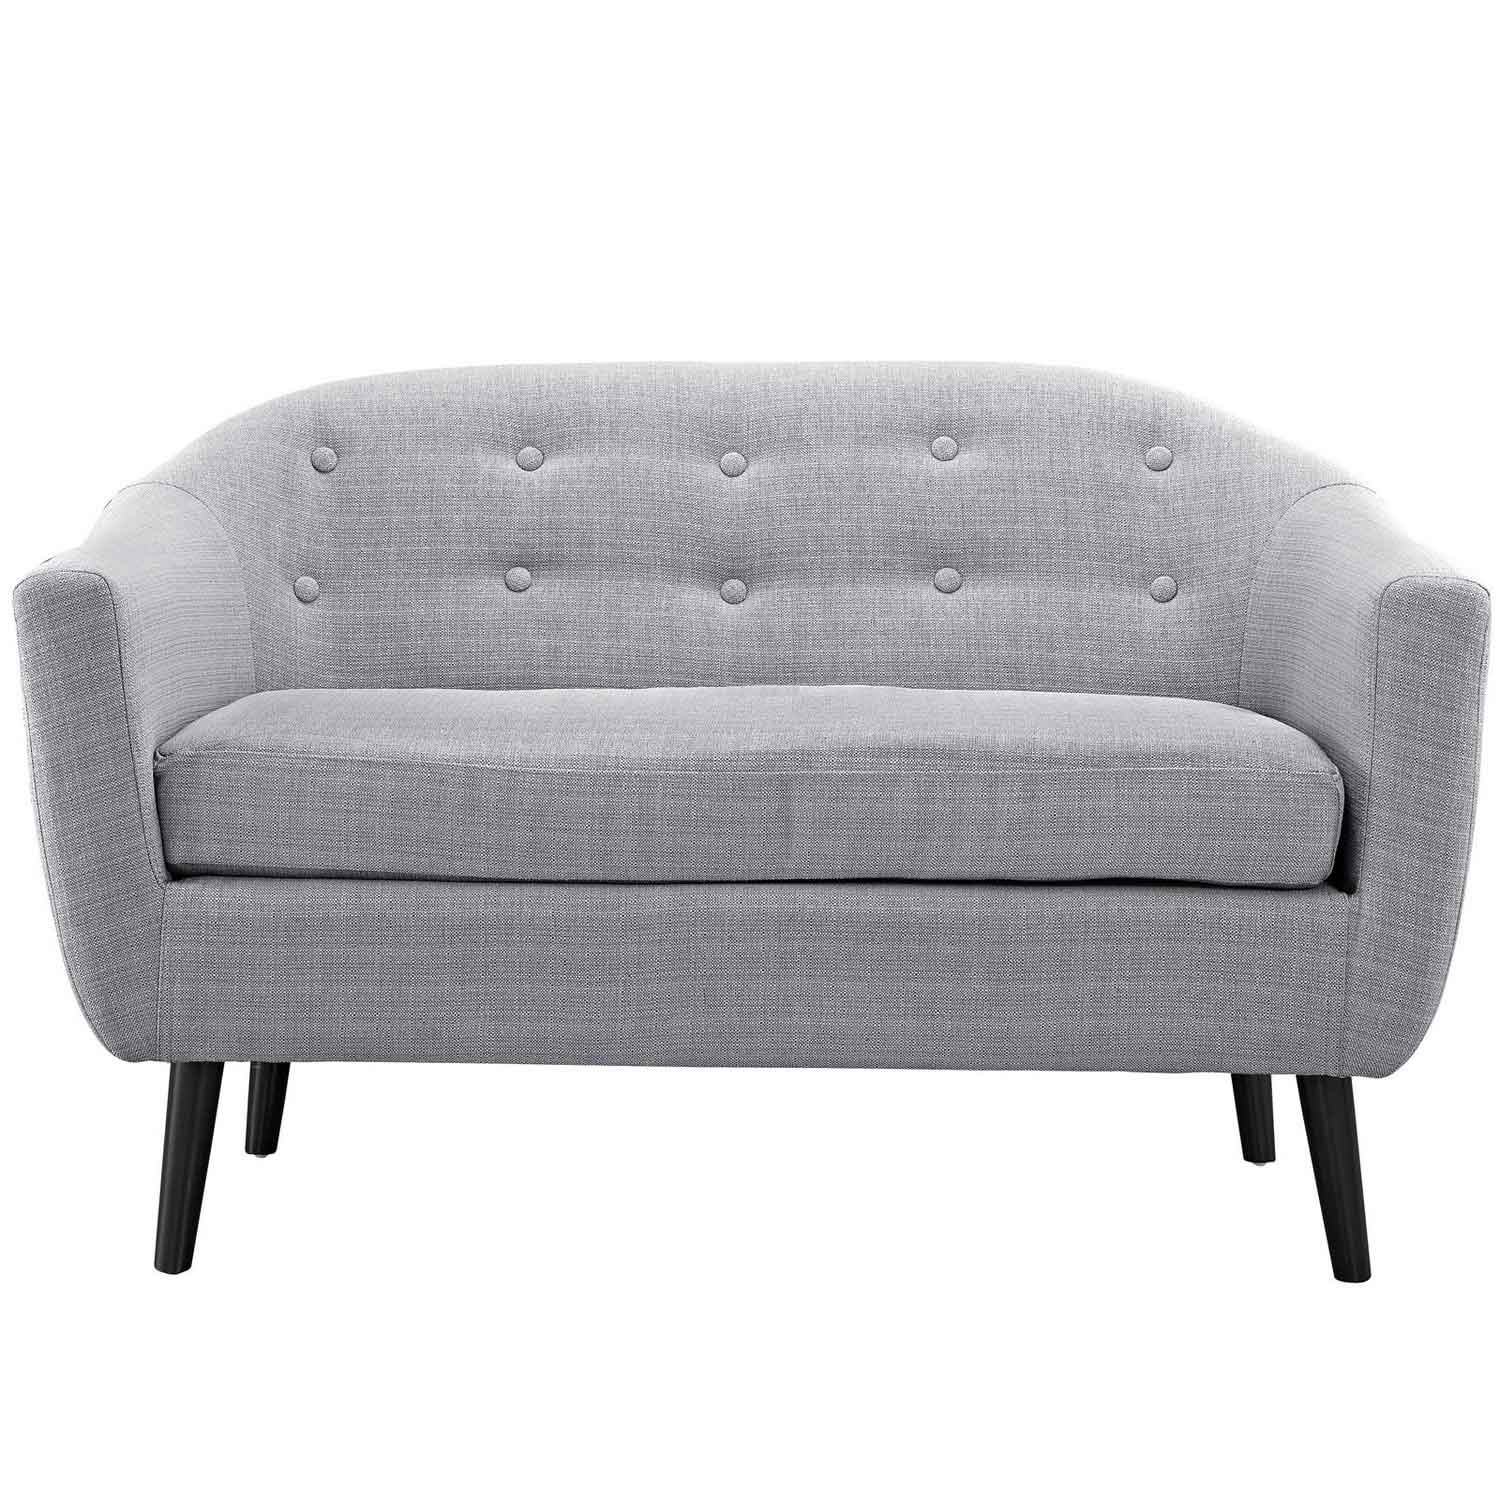 Modway Wit Loveseat - Light Gray